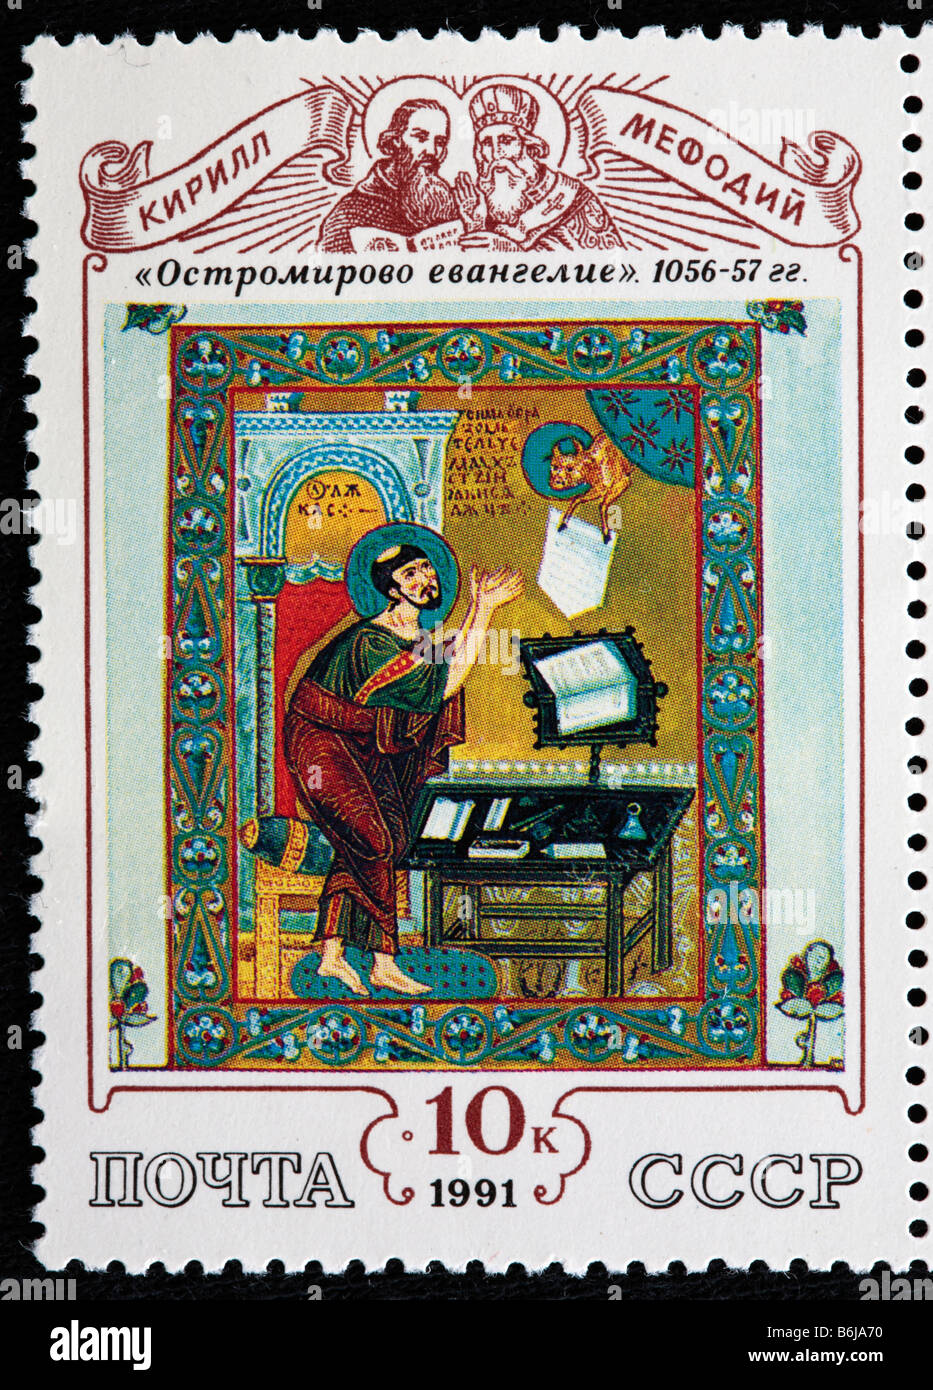 Miniature from Ostromir Gospel, the oldest dated East Slavic book (1056-1057), postage stamp, USSR, 1991 - Stock Image